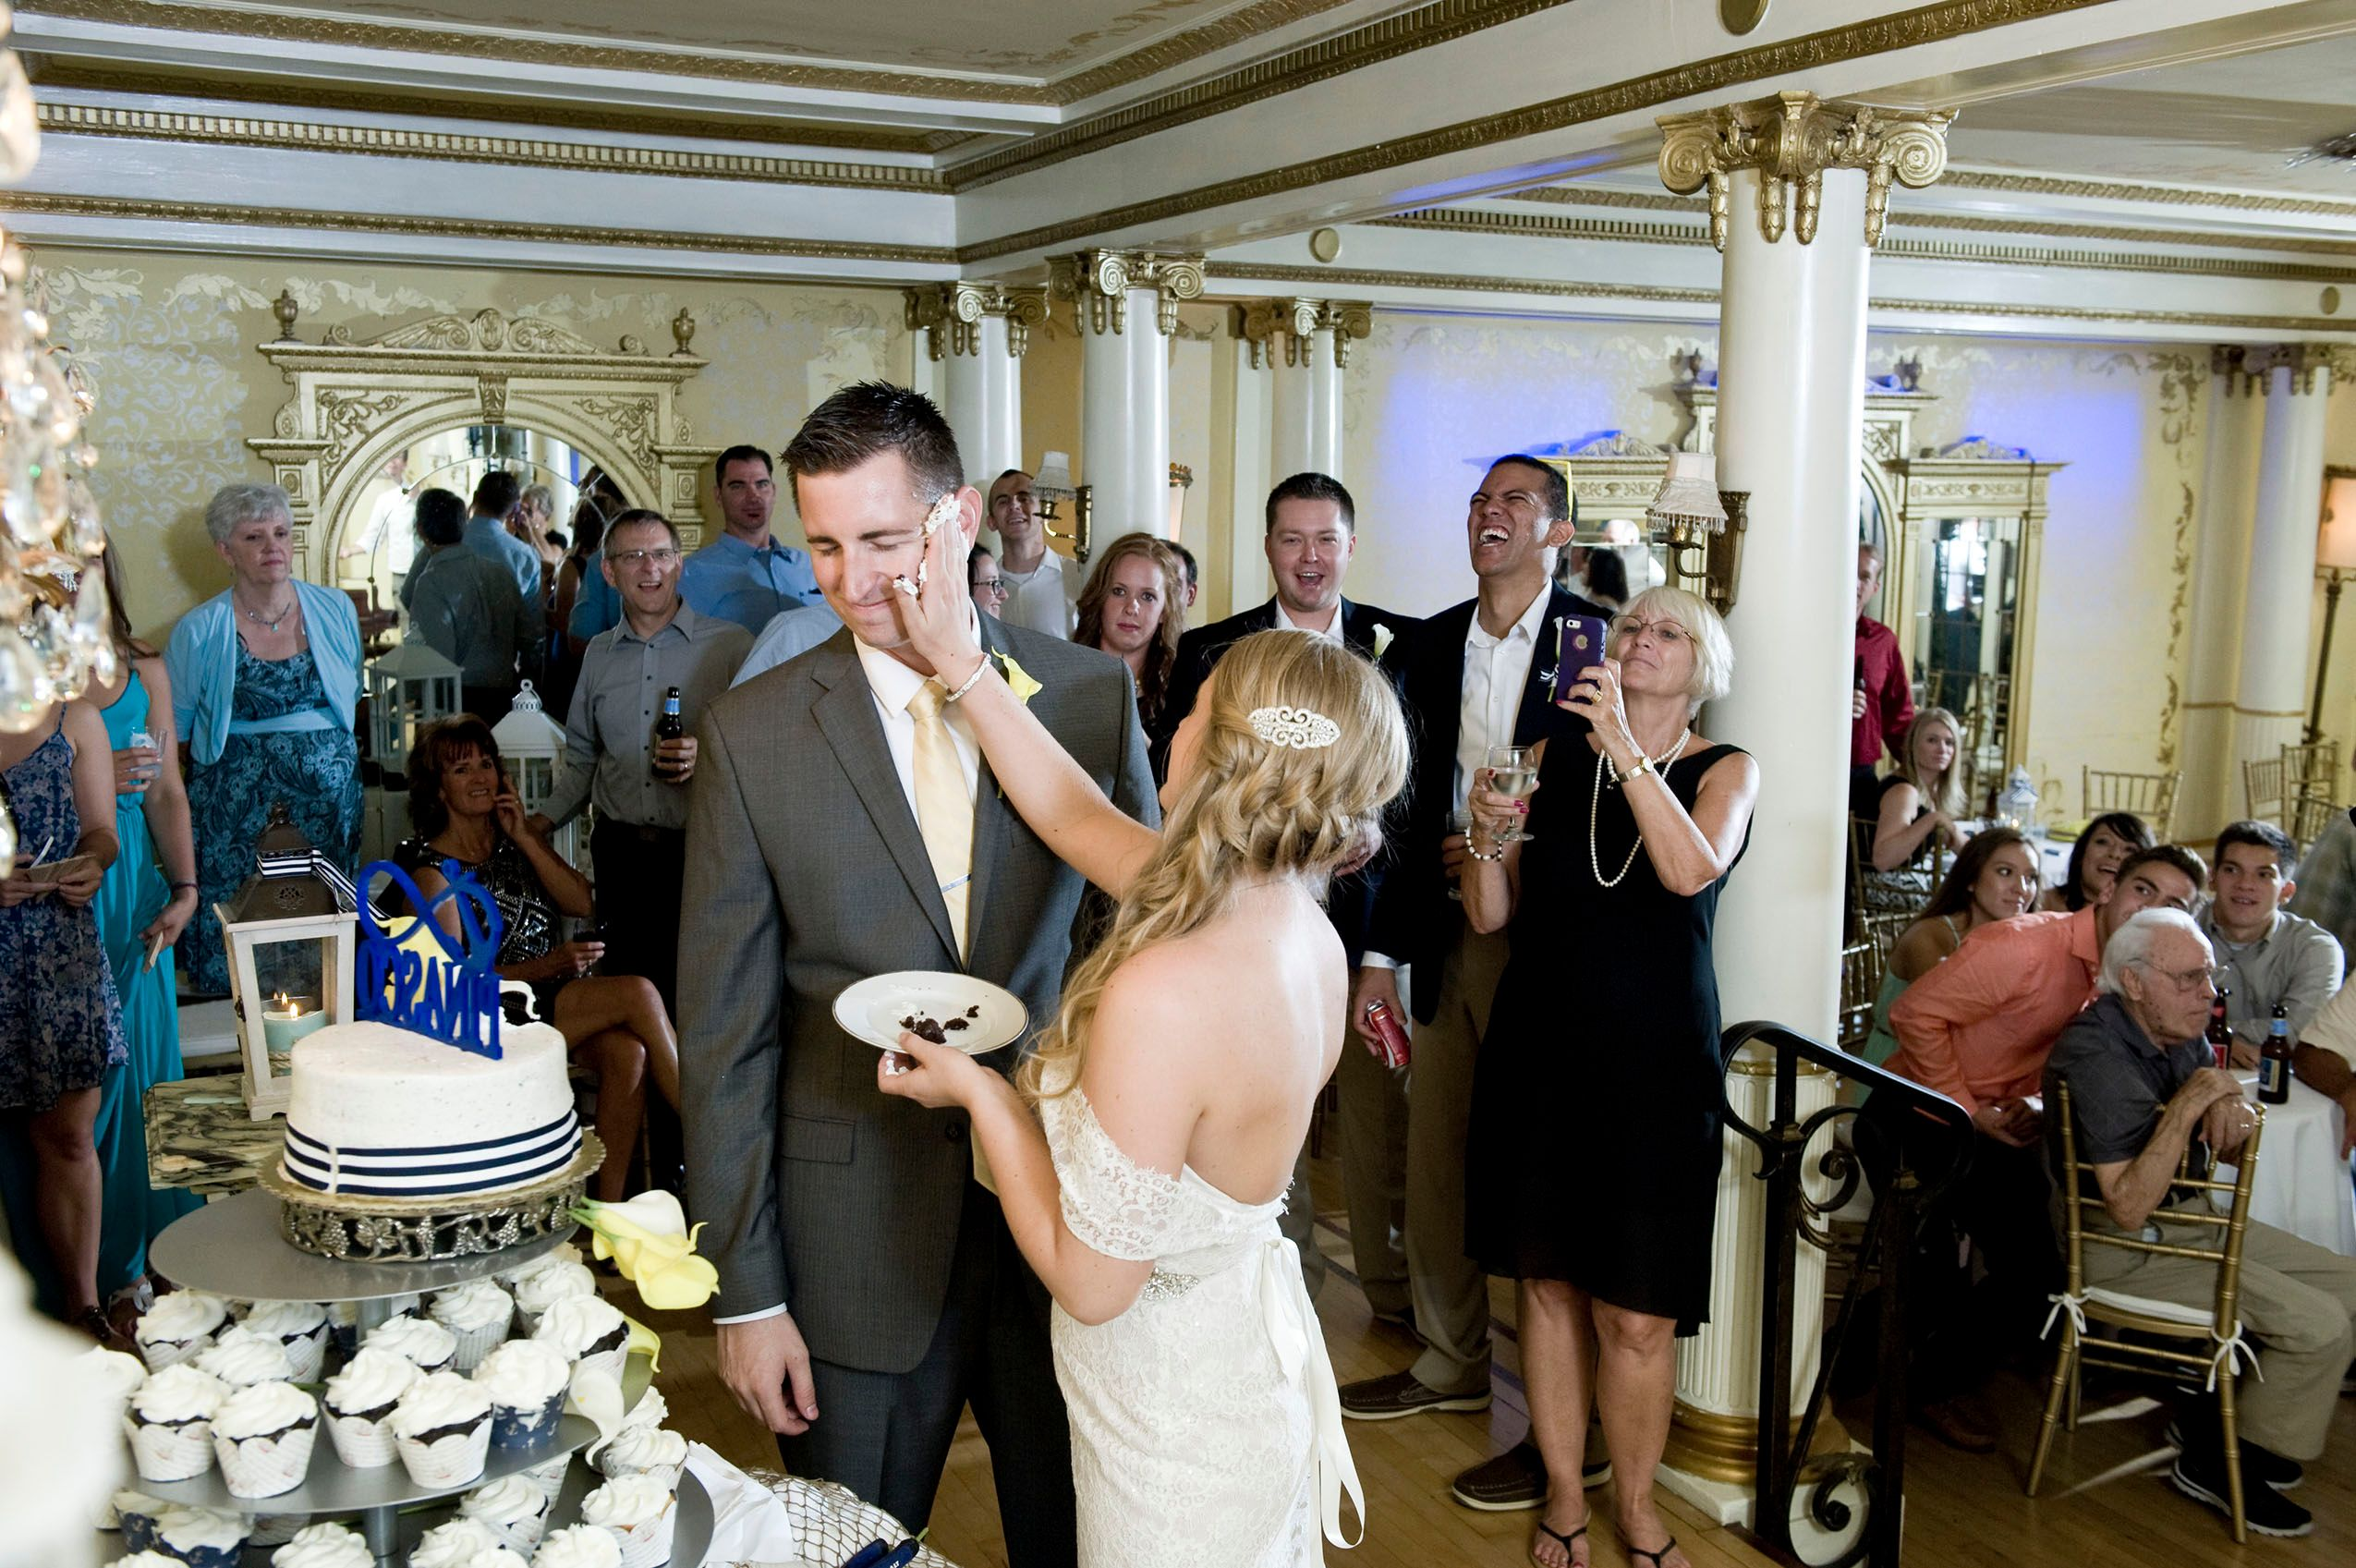 Grand Island Mansion Wedding Reception - 117